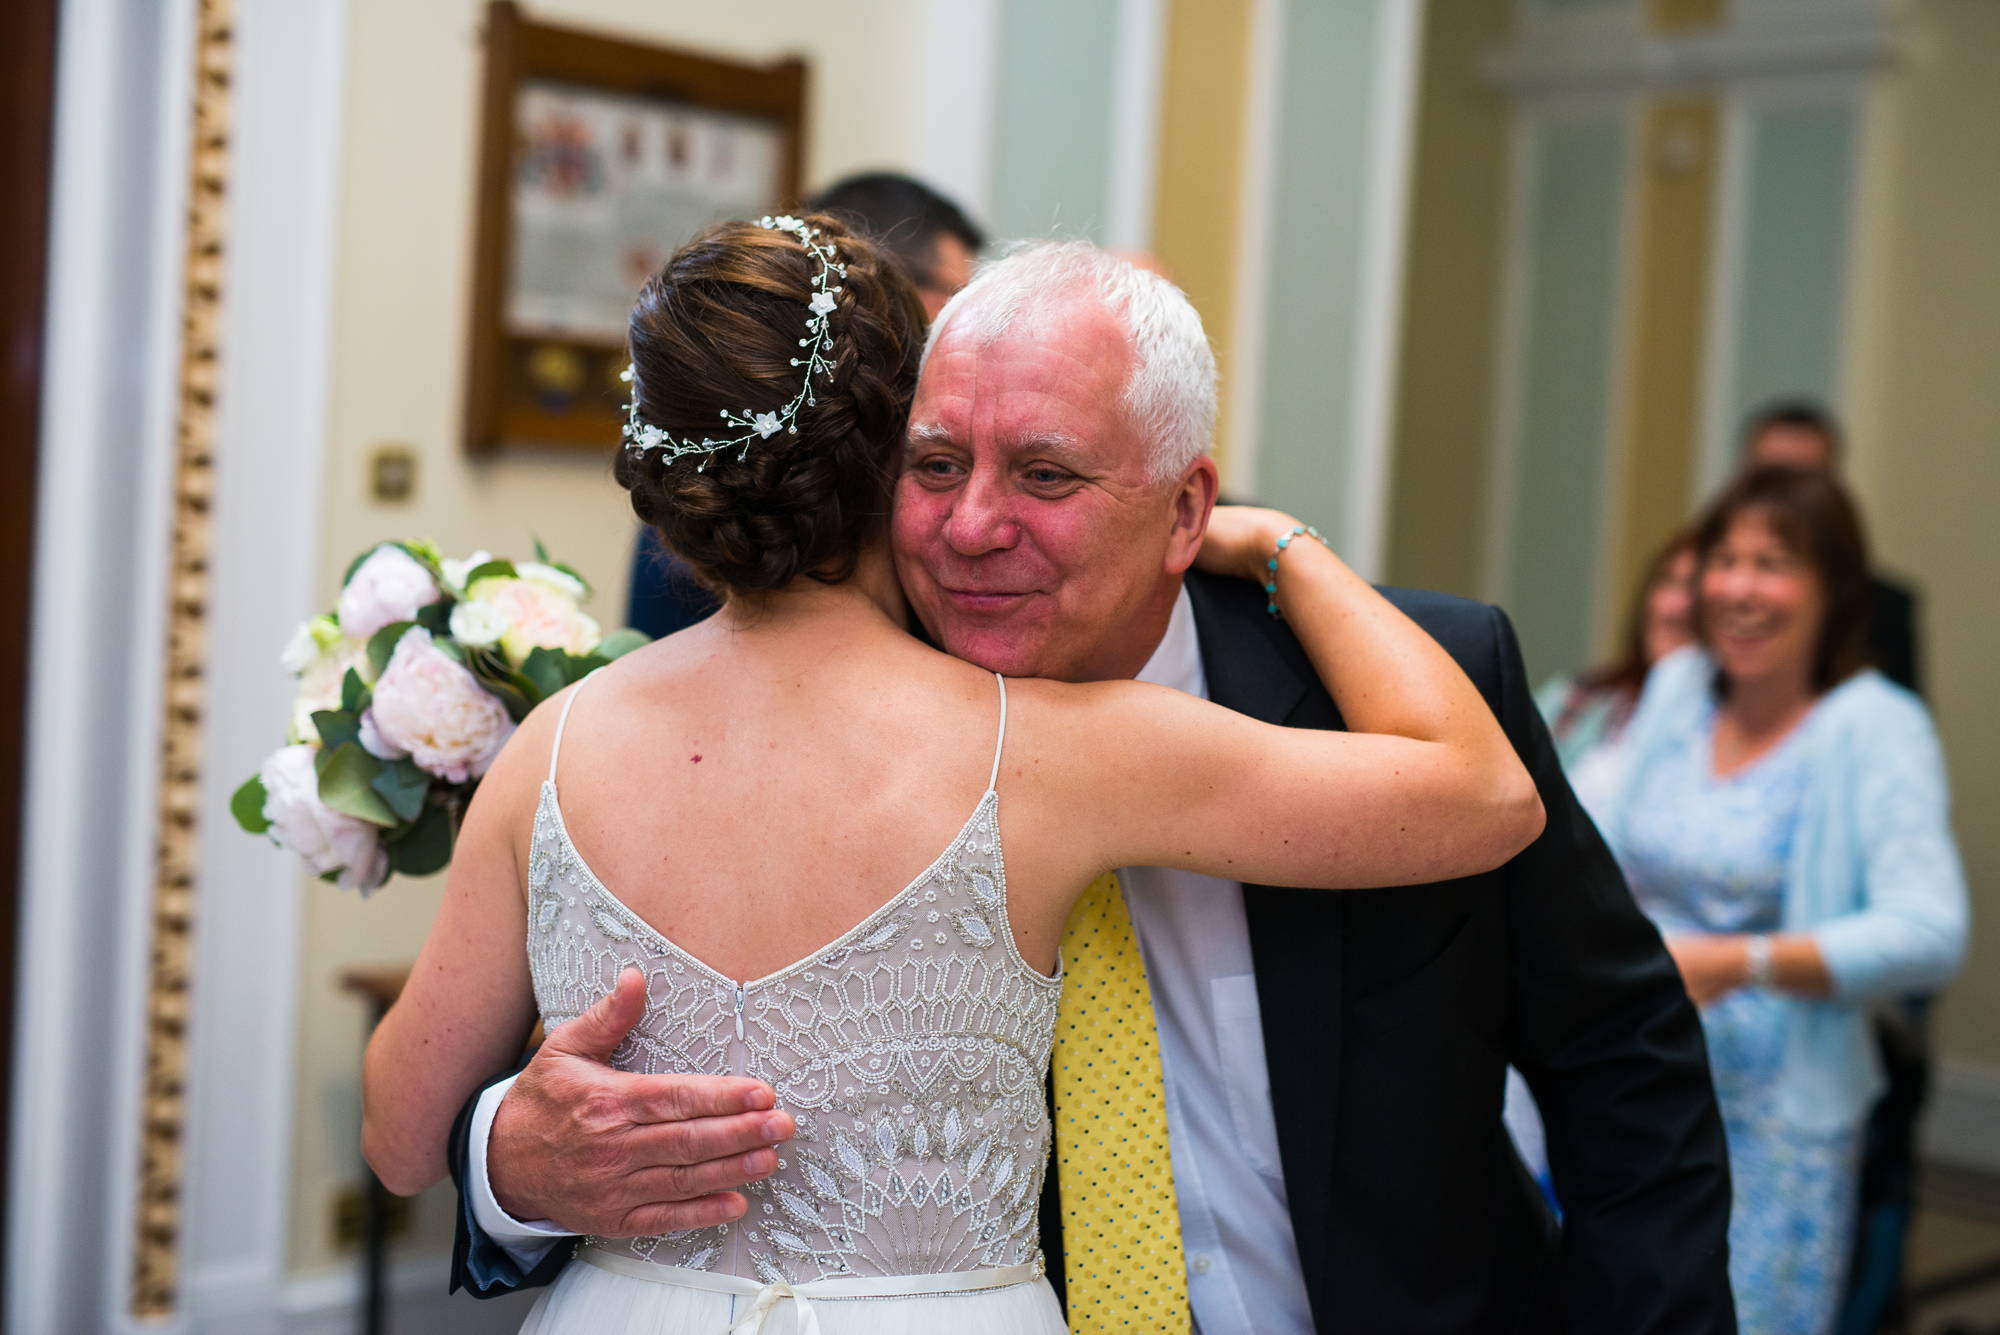 Crewe municipal building wedding17.jpg